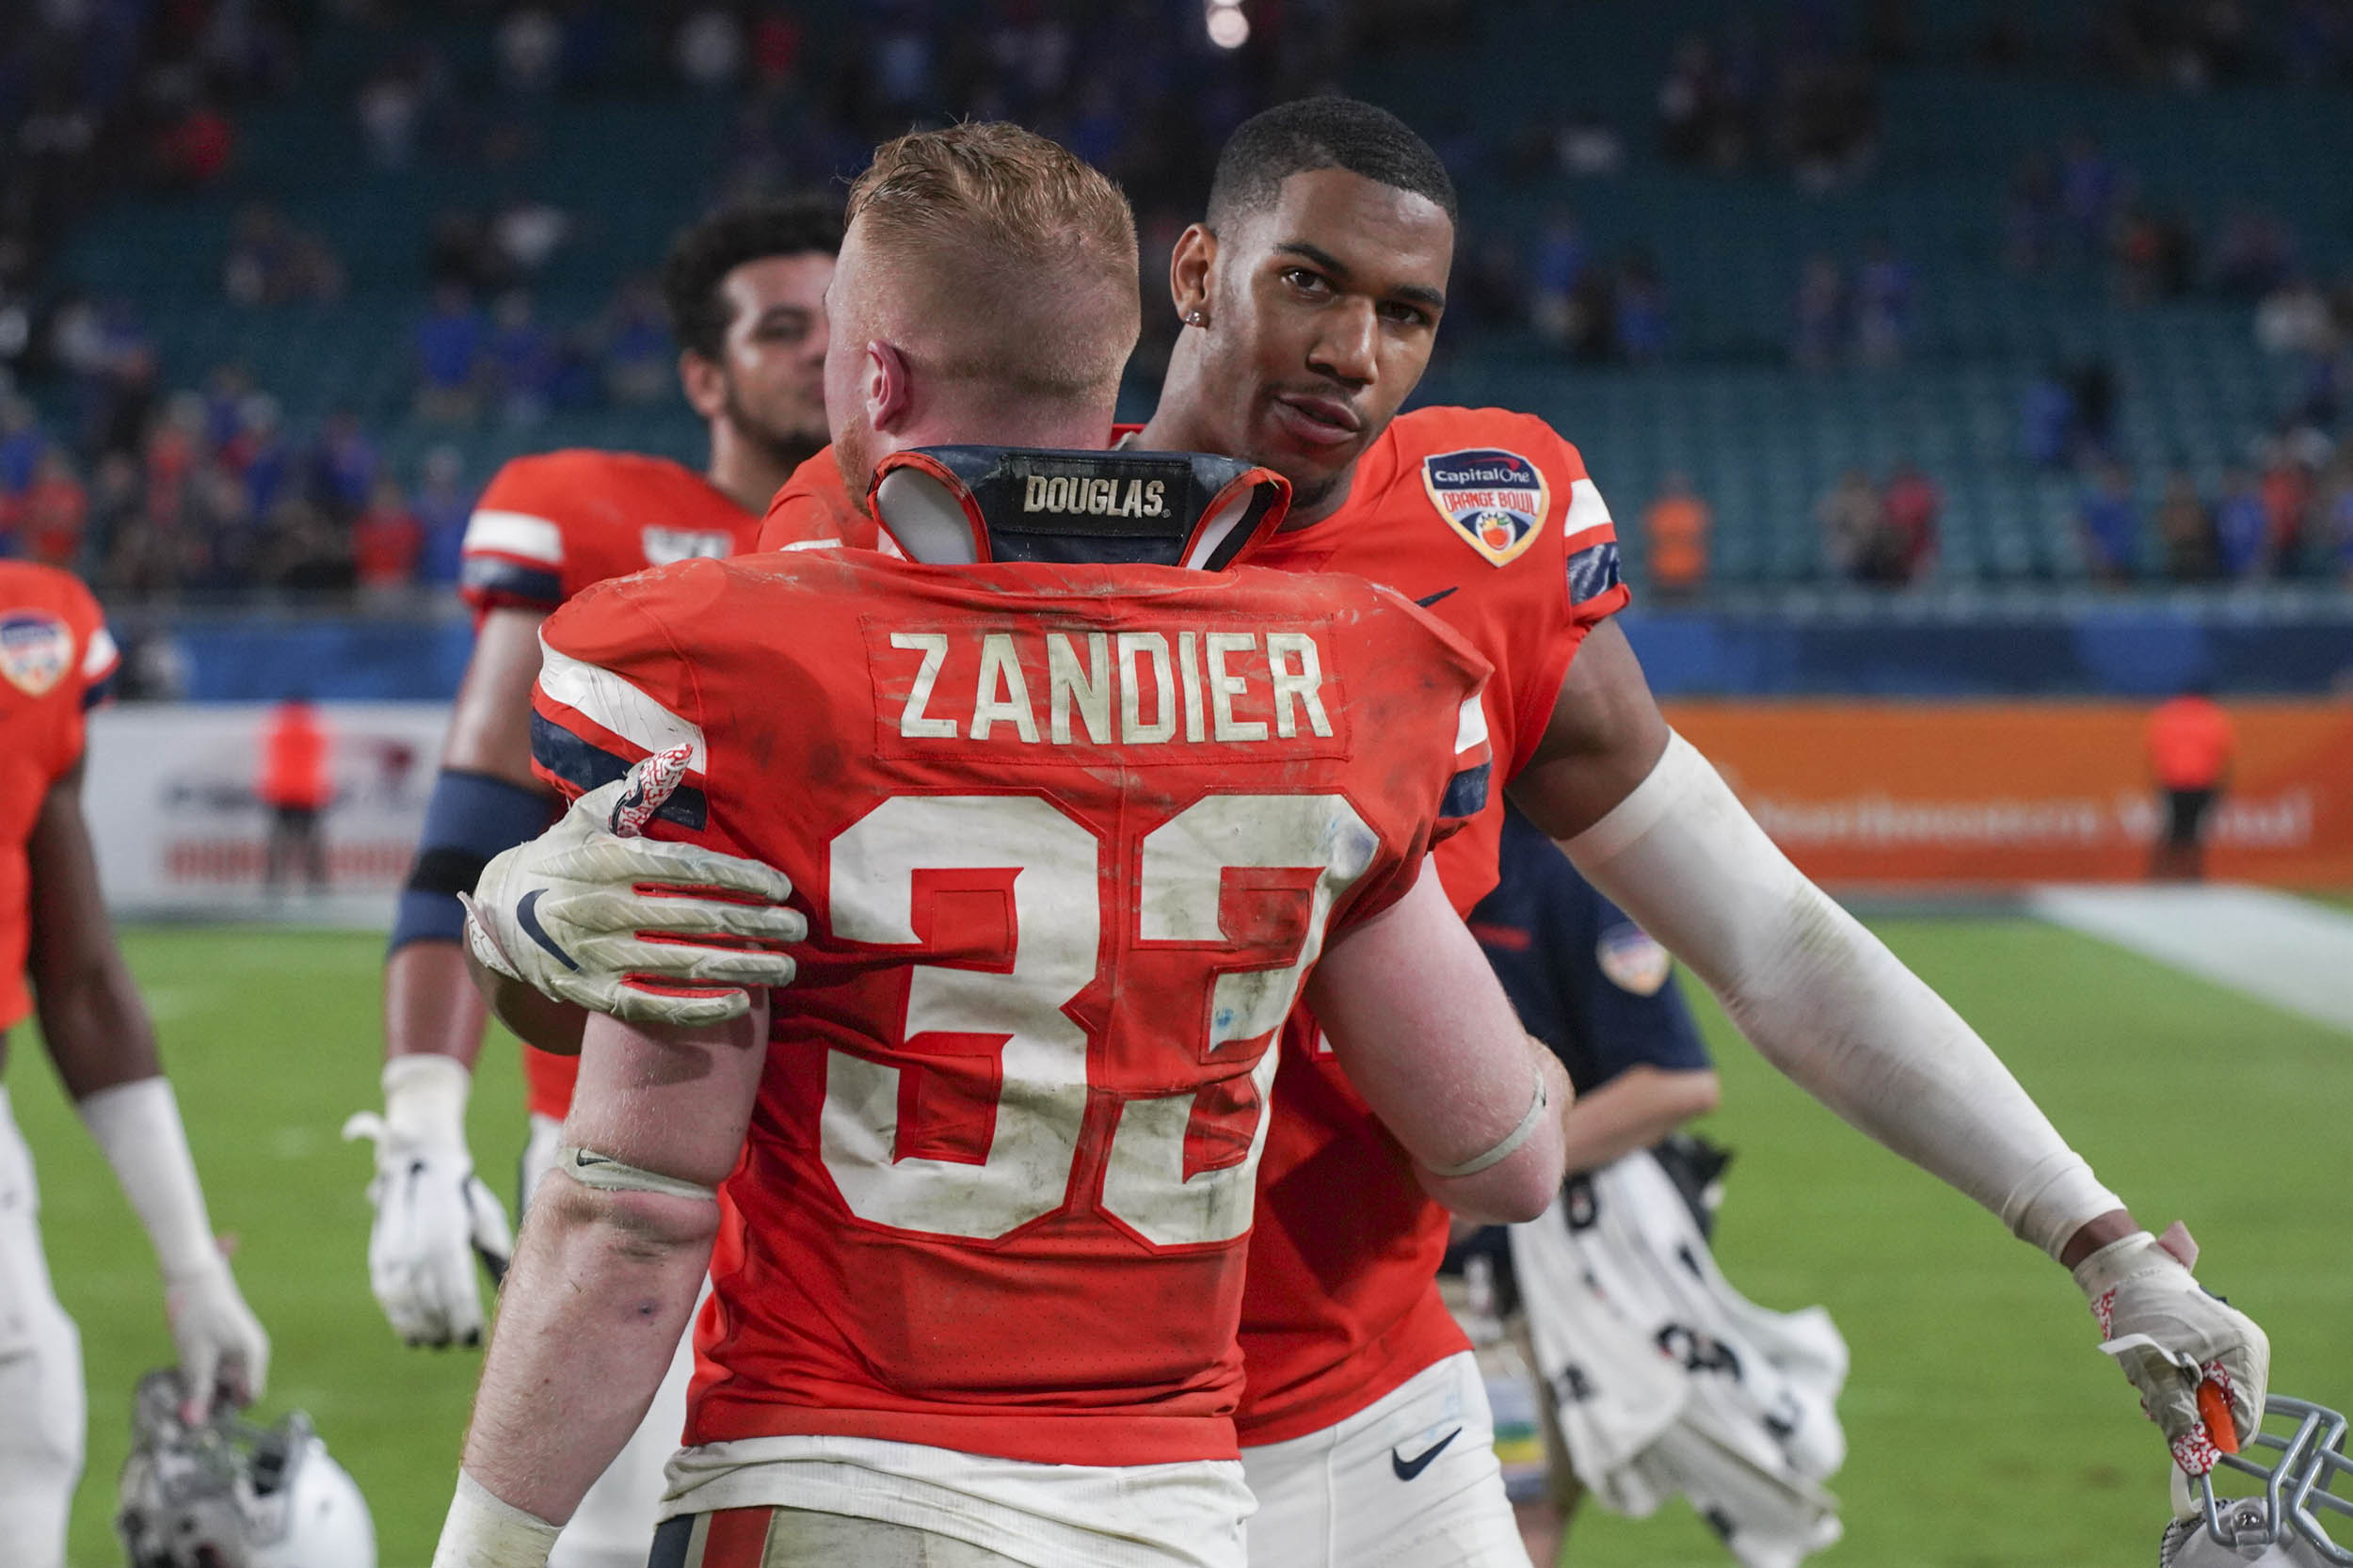 Zandier and teammate Charles Snowden share a hug after the game as the Hoos leave the field for the last time in 2019.